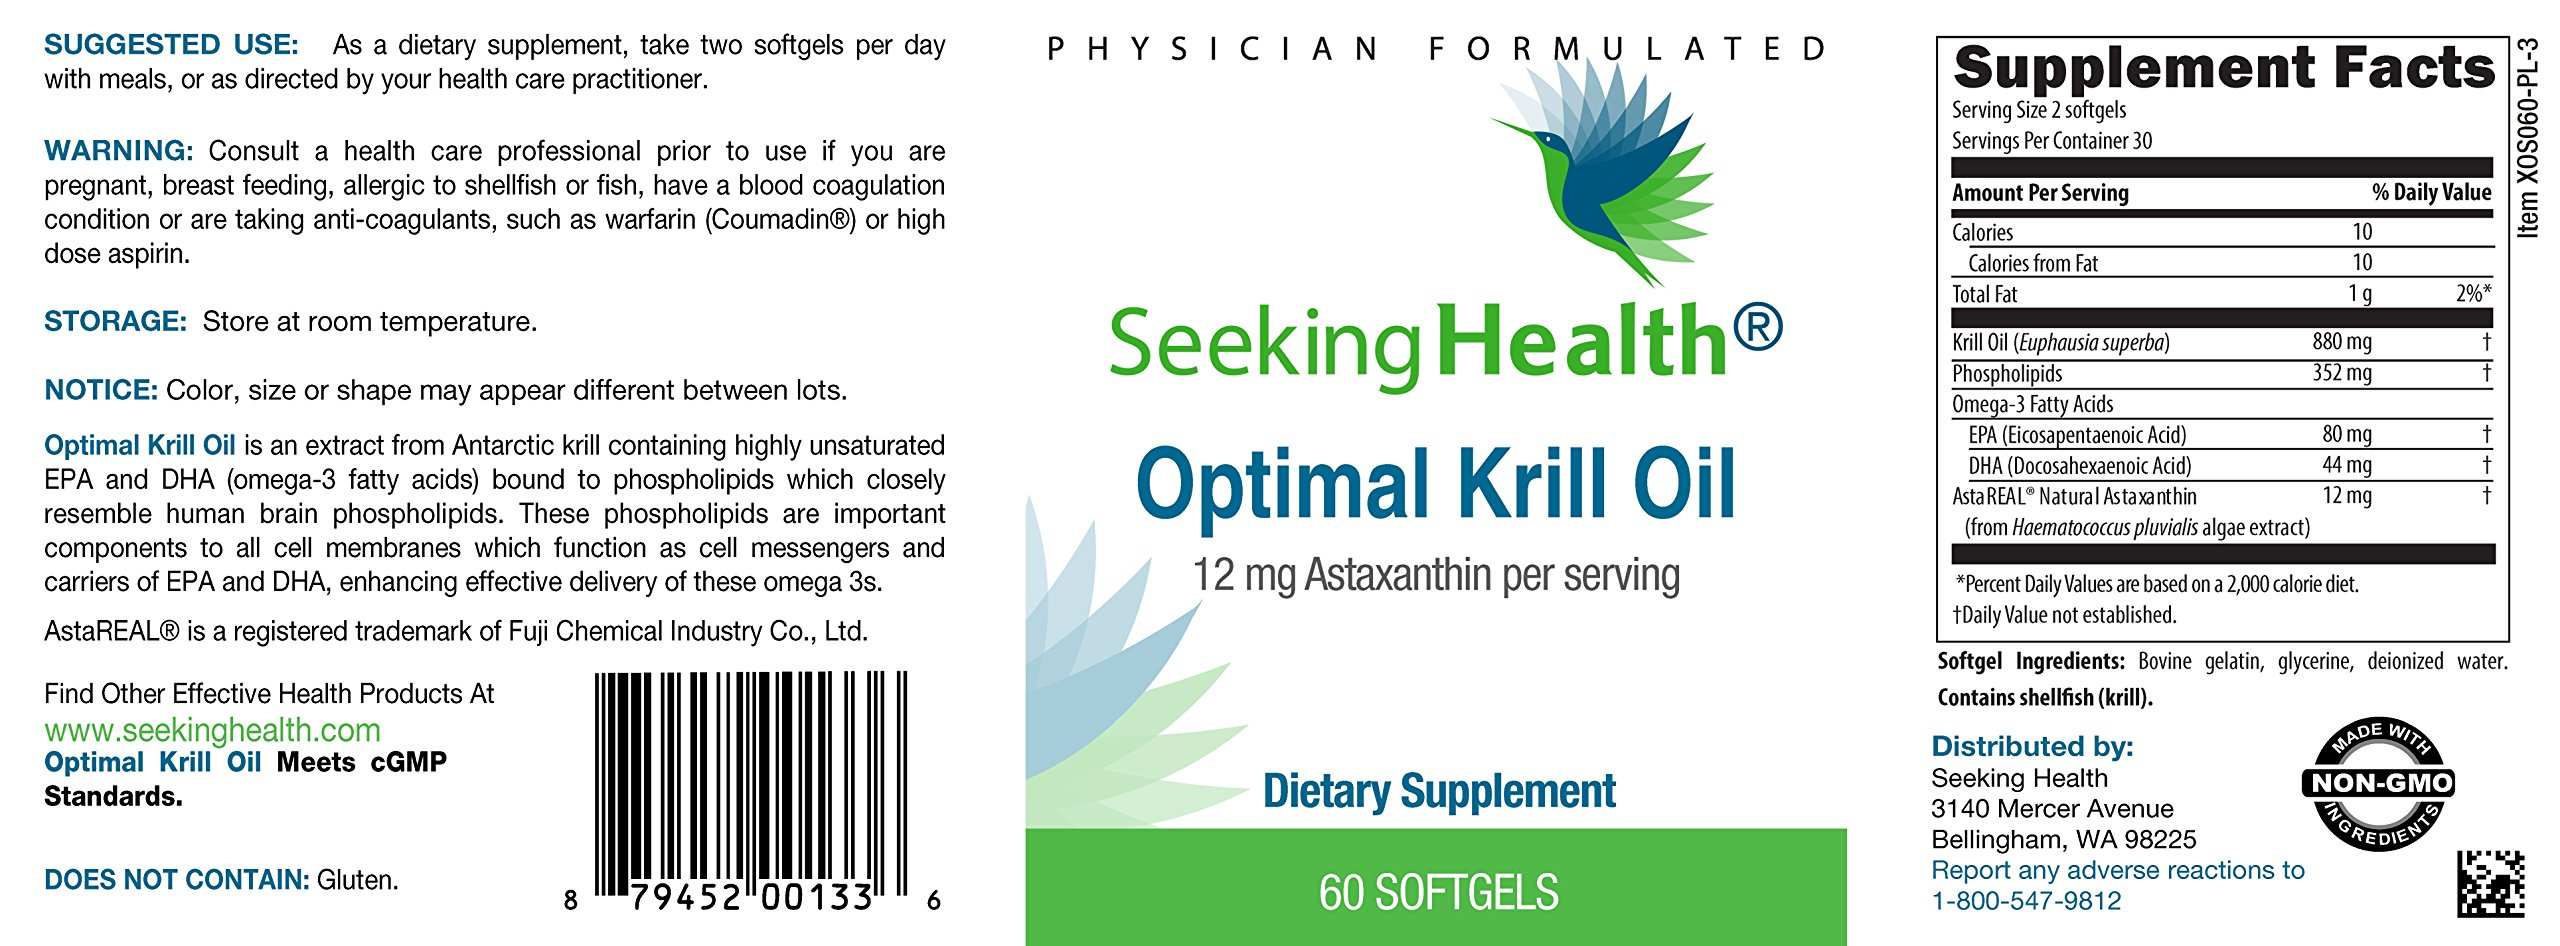 Optimal Krill Oil | 60 Capsules | Burp-Free | Lab Tested For Purity | Non -GMO | From The Pristine Antarctic Waters | Physician Formulated | Seeking Health